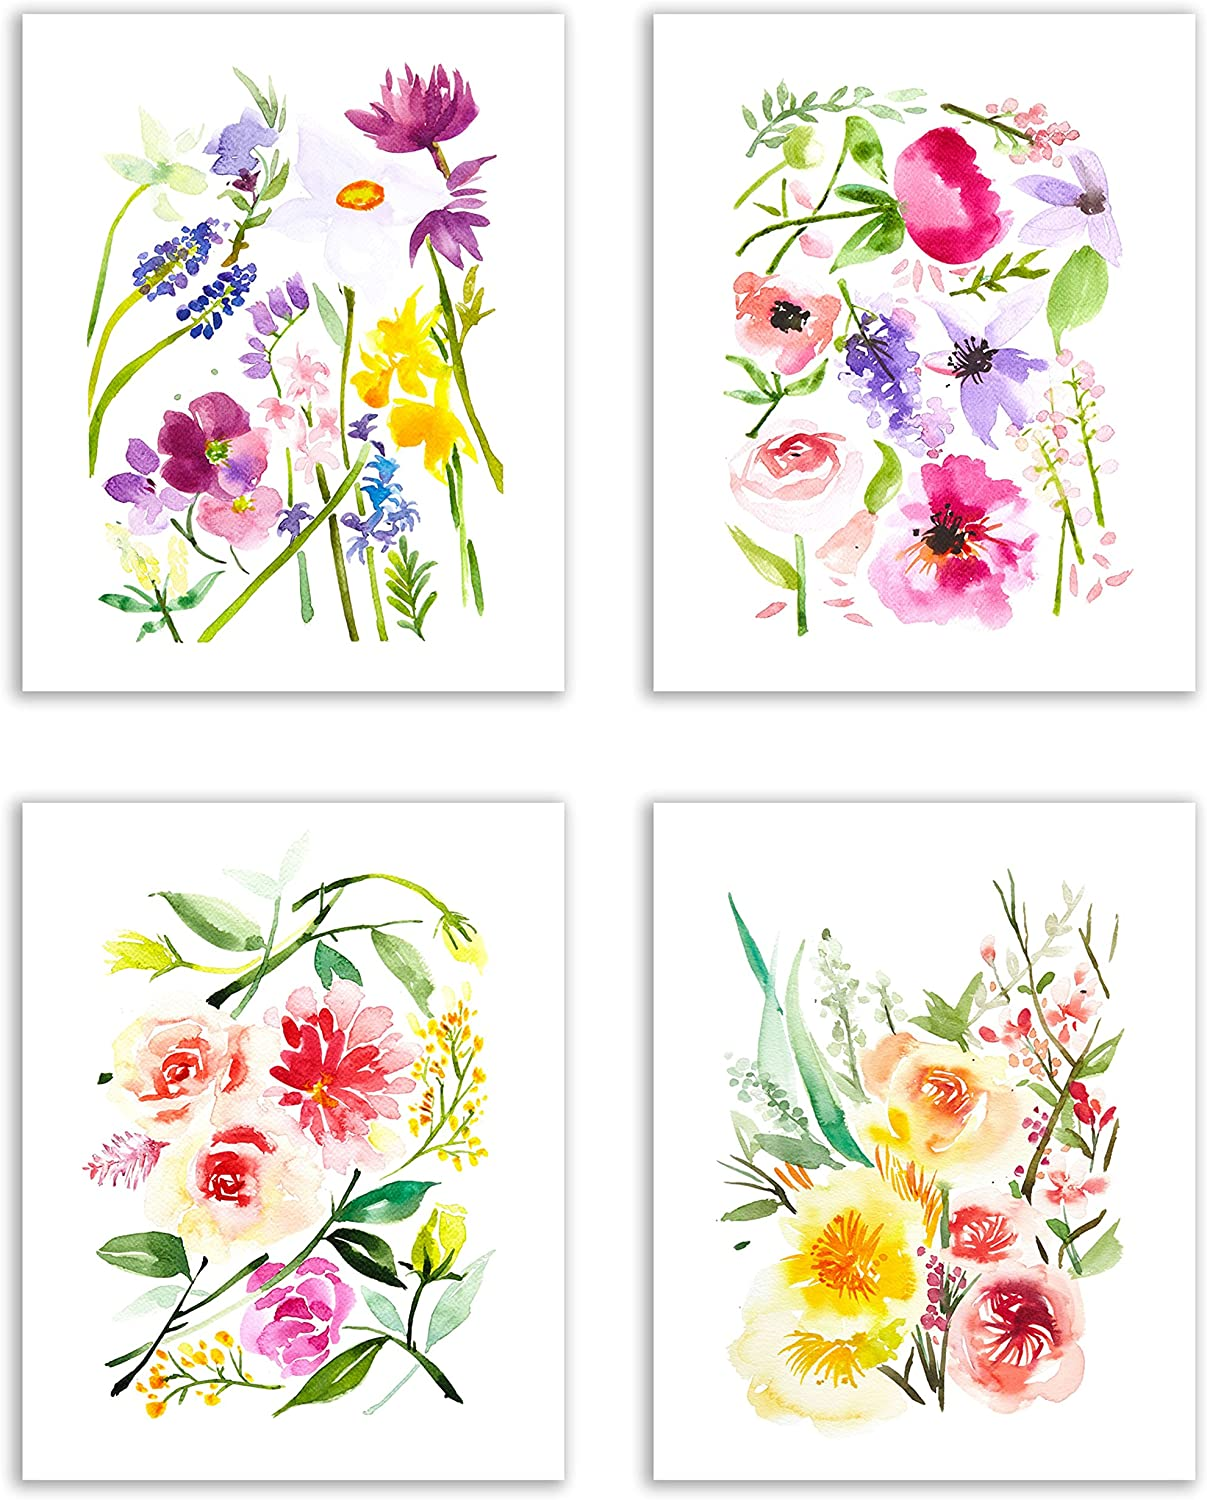 Floral Watercolor Pastel Flower Art Prints — Set of Four 8x10 Photos of Daffodils, Periwinkle, Peonies, Dahlias, Hyacinth, Feverfew and Lily of The Valley